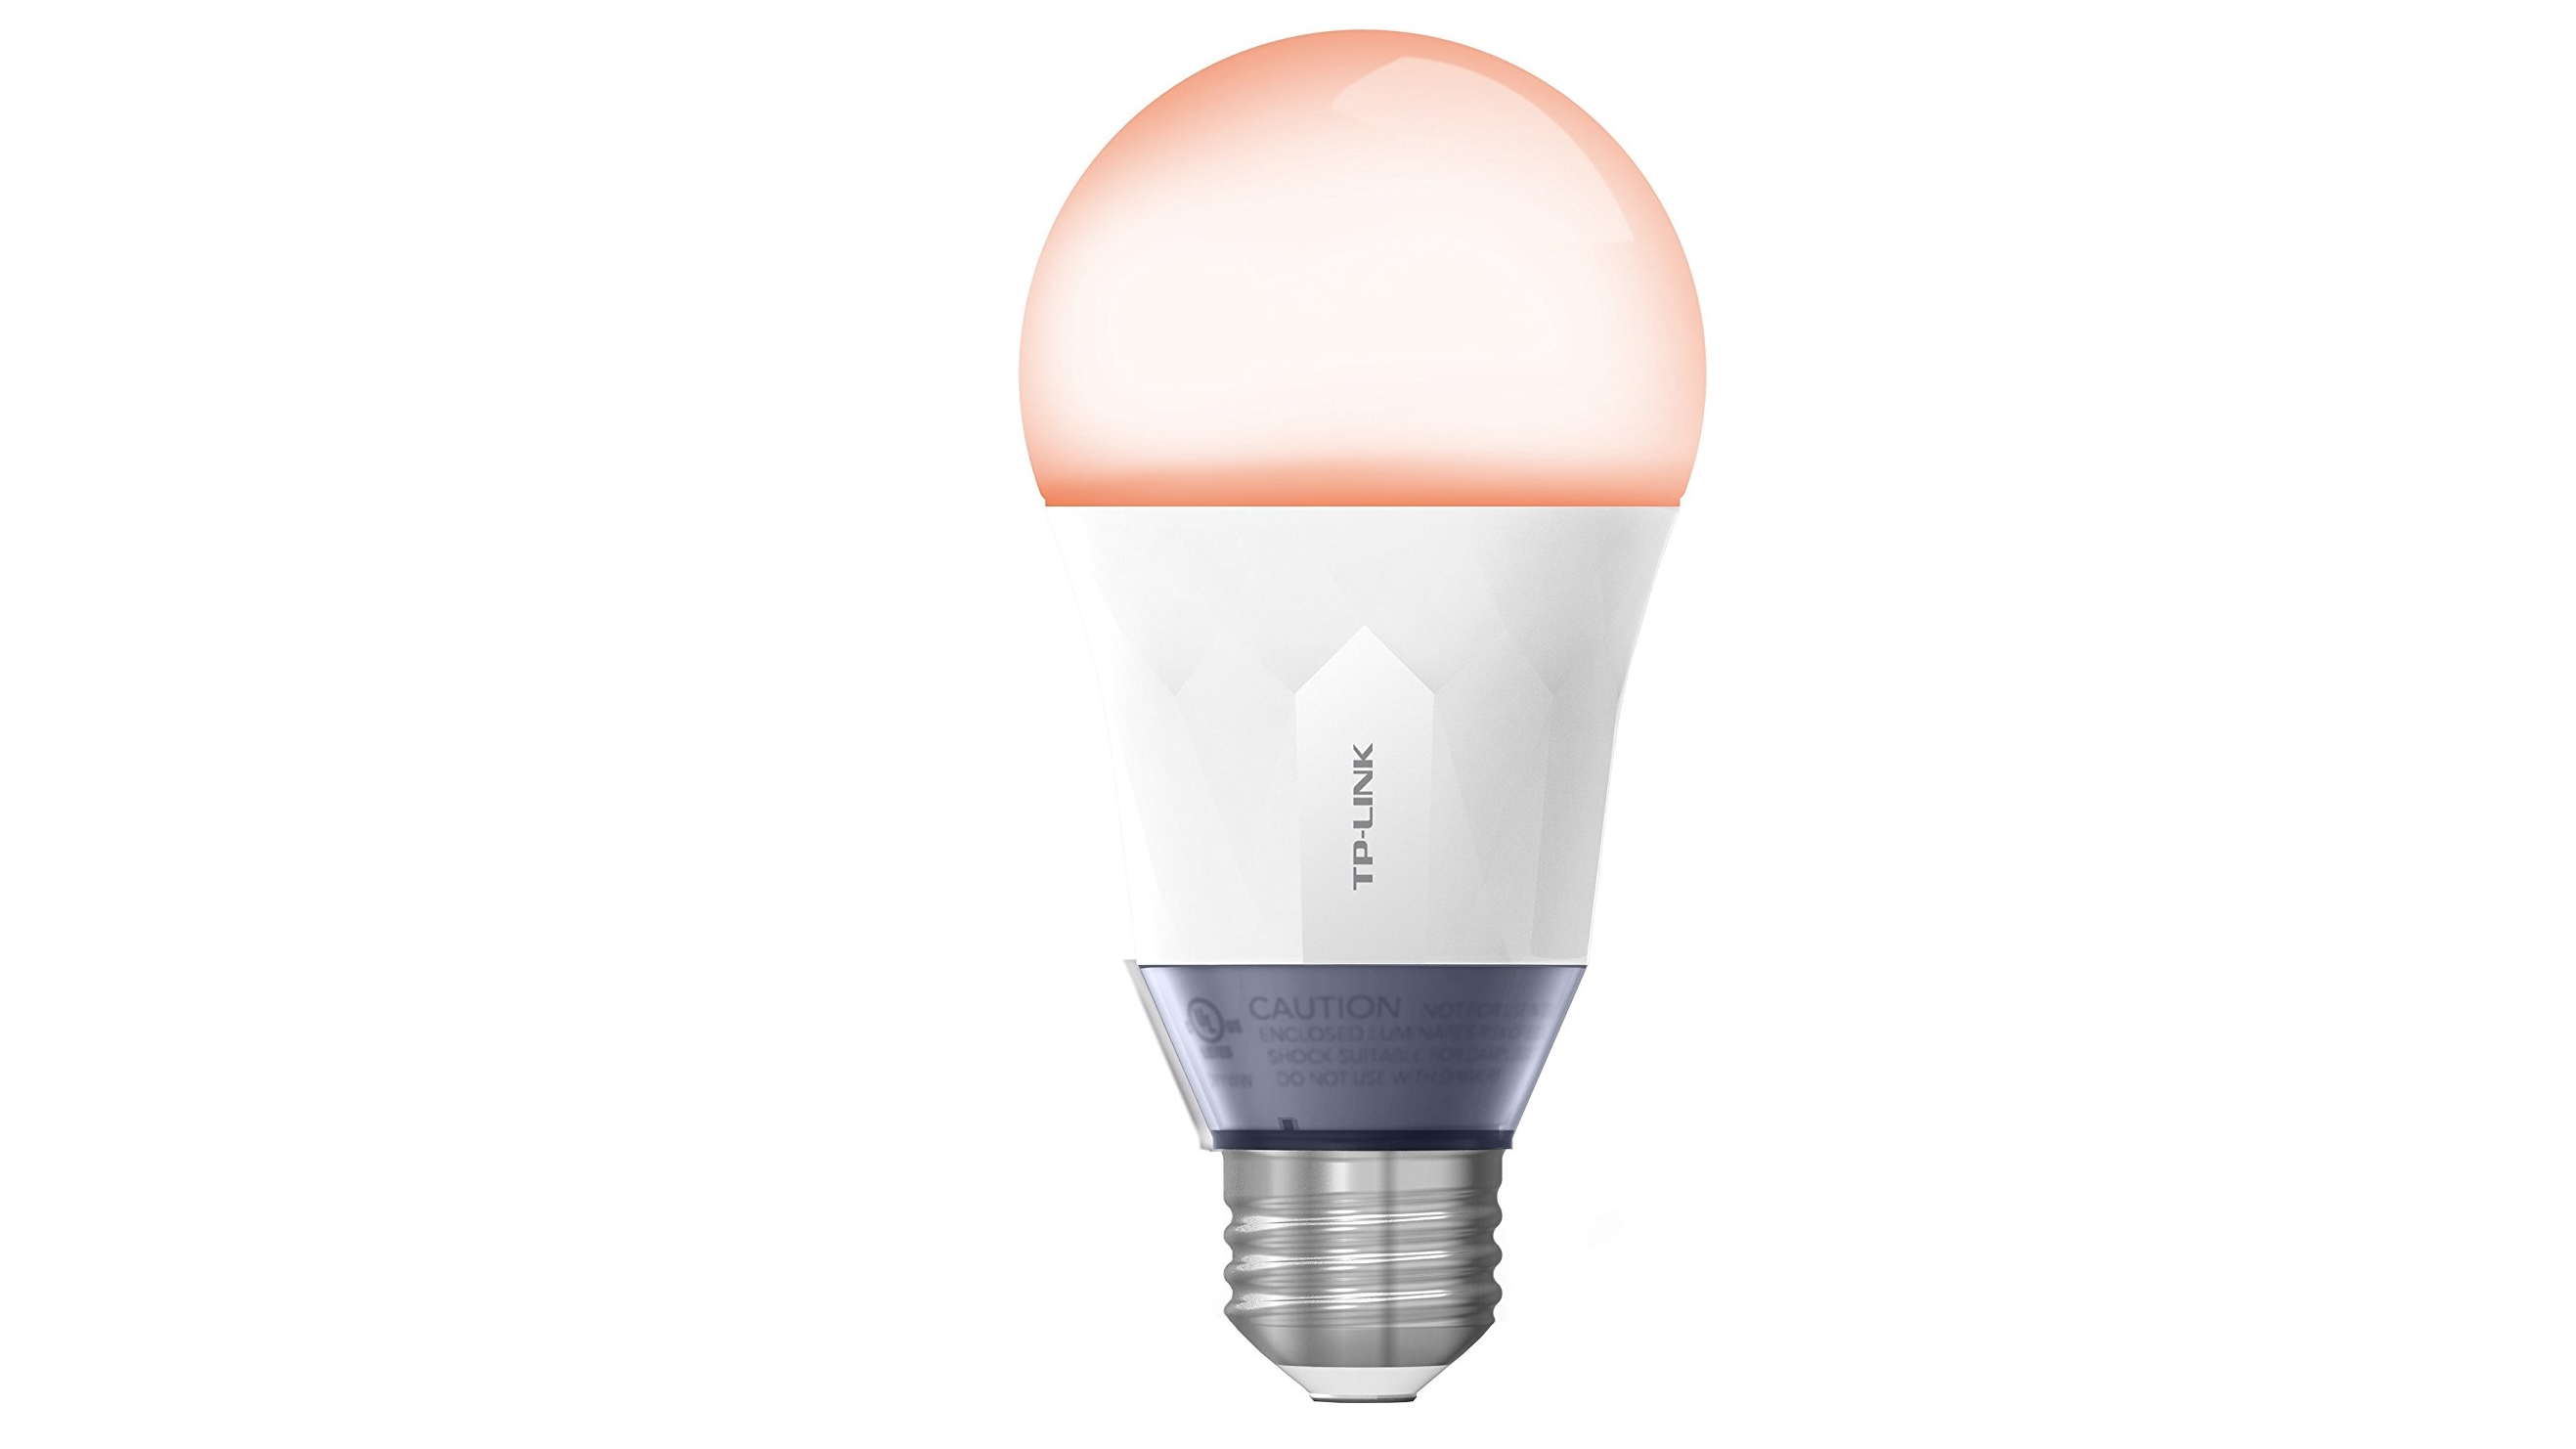 TP-Link Smart Wi-Fi LED Bulb review: the smartest light bulb yet ...